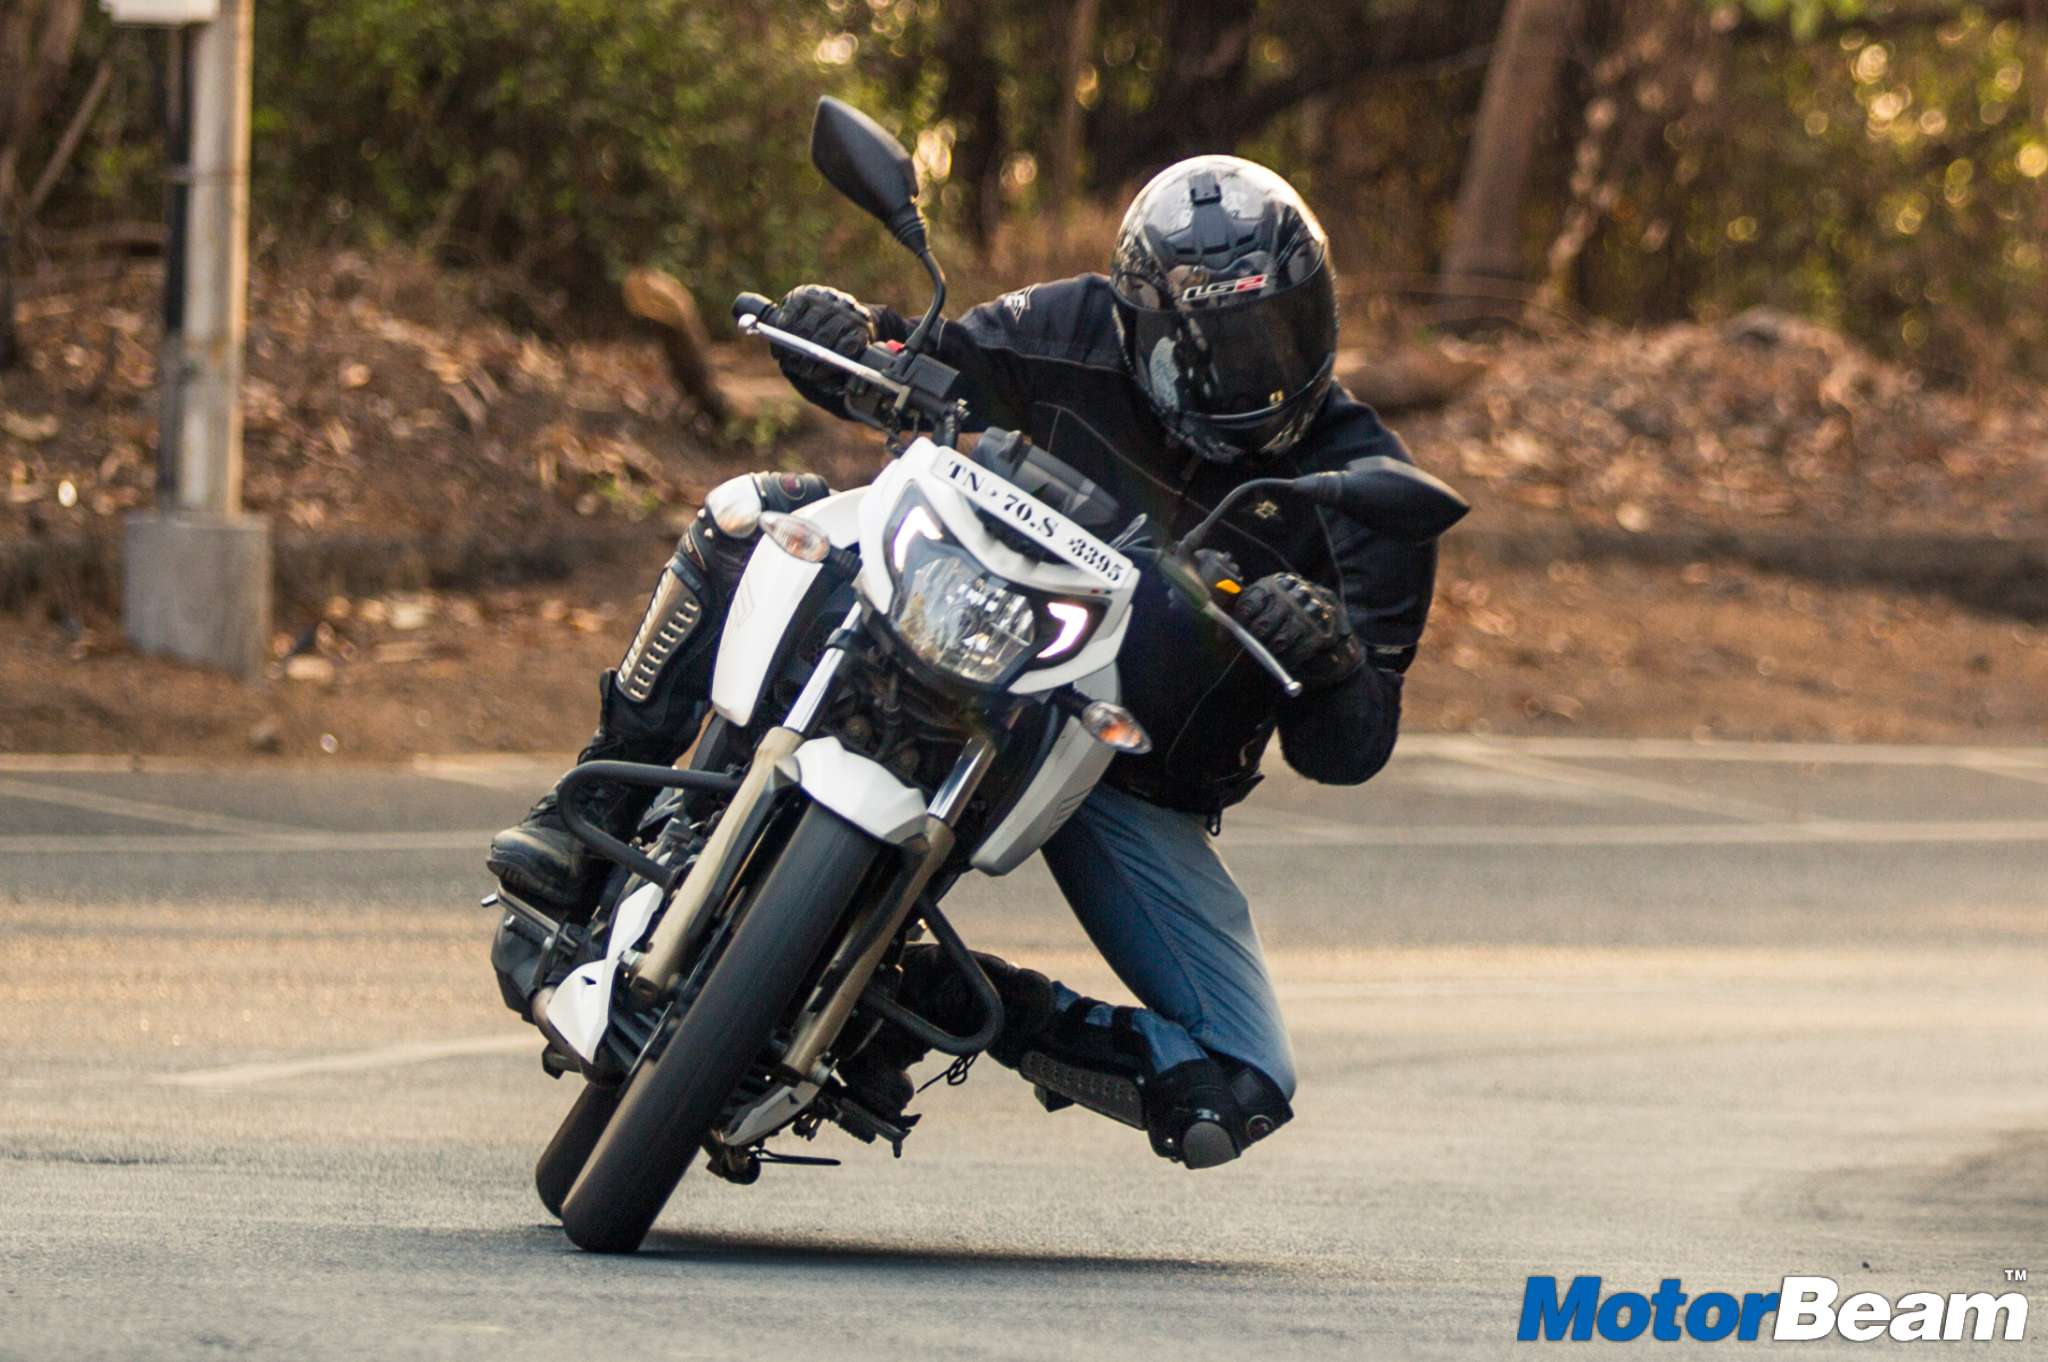 2016 TVS Apache 200 Video Review